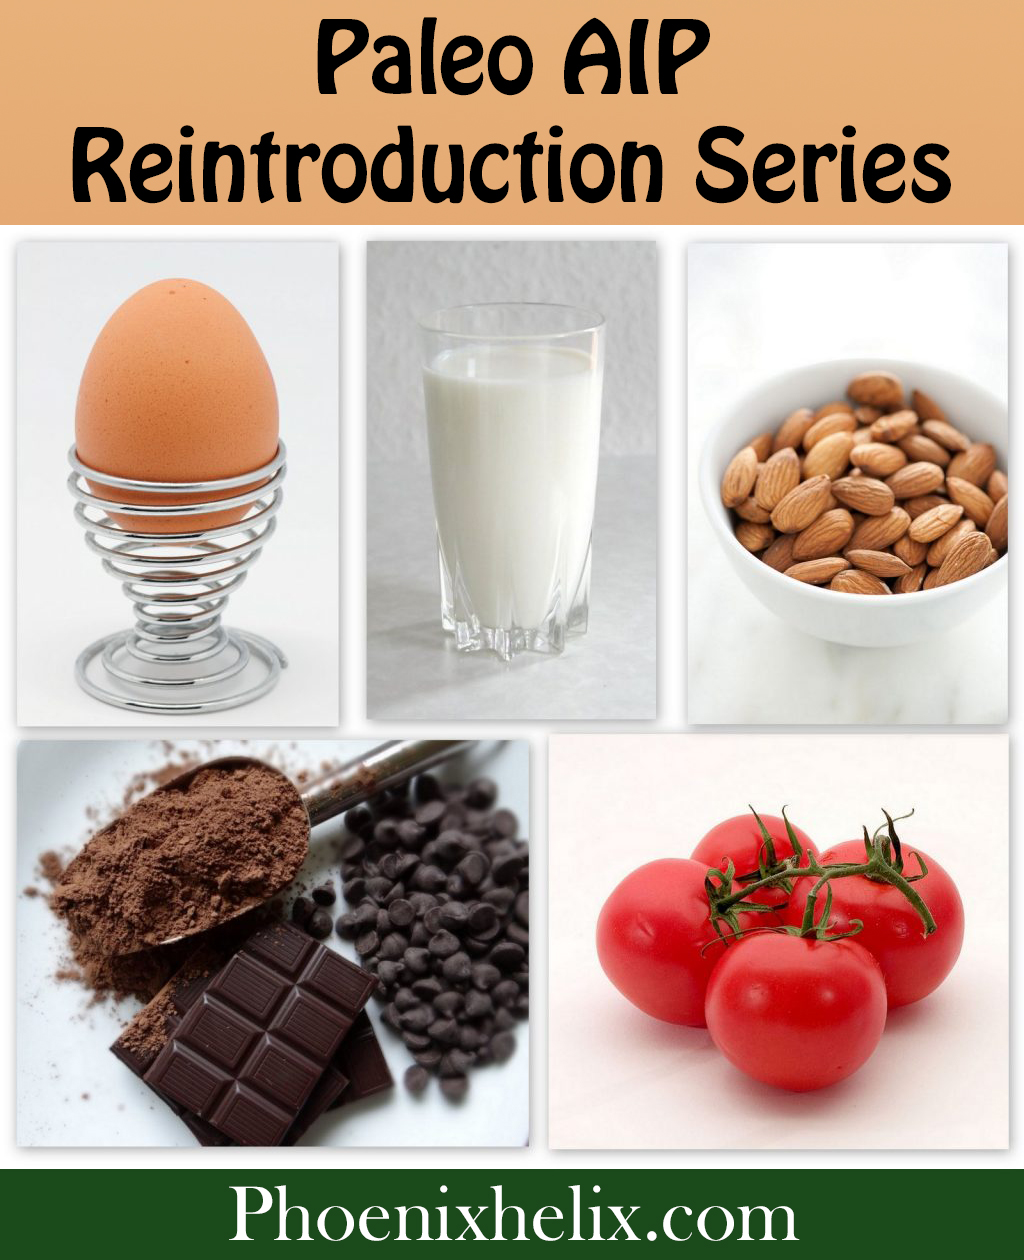 Paleo AIP Reintroduction Series | Phoenix Helix